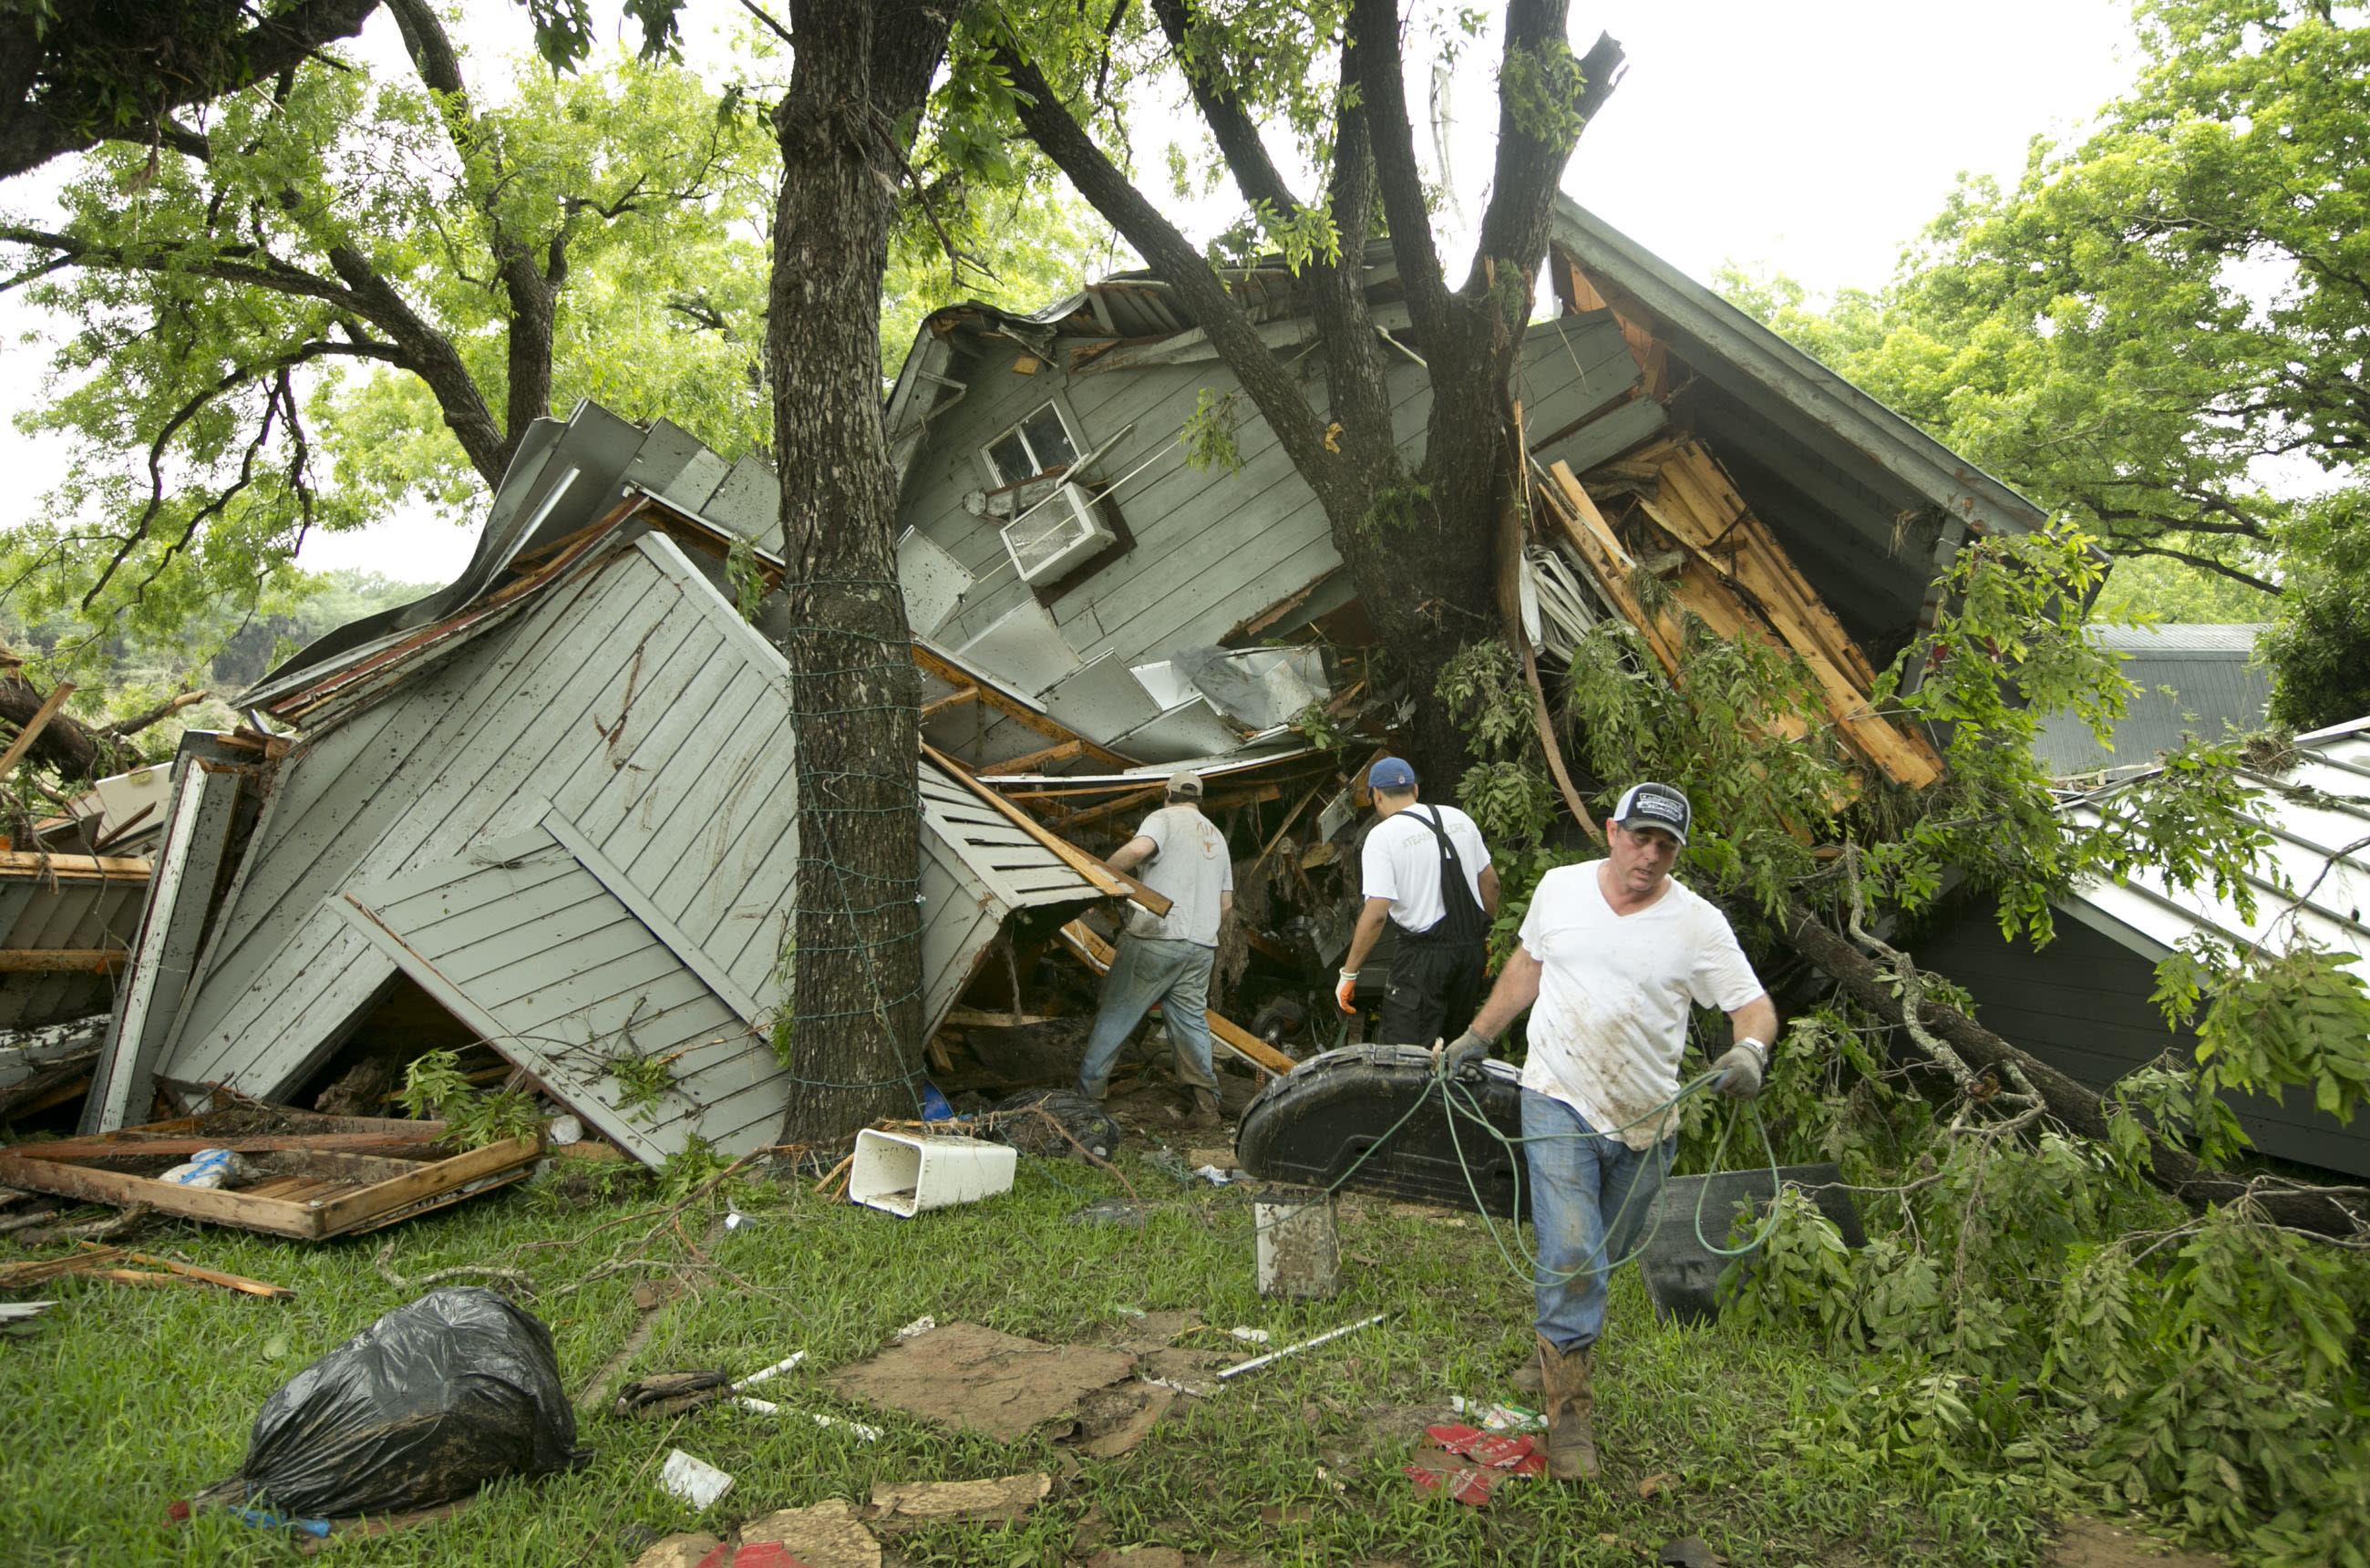 Flash floods in Texas, Oklahoma kill 2; 100s of homes gone